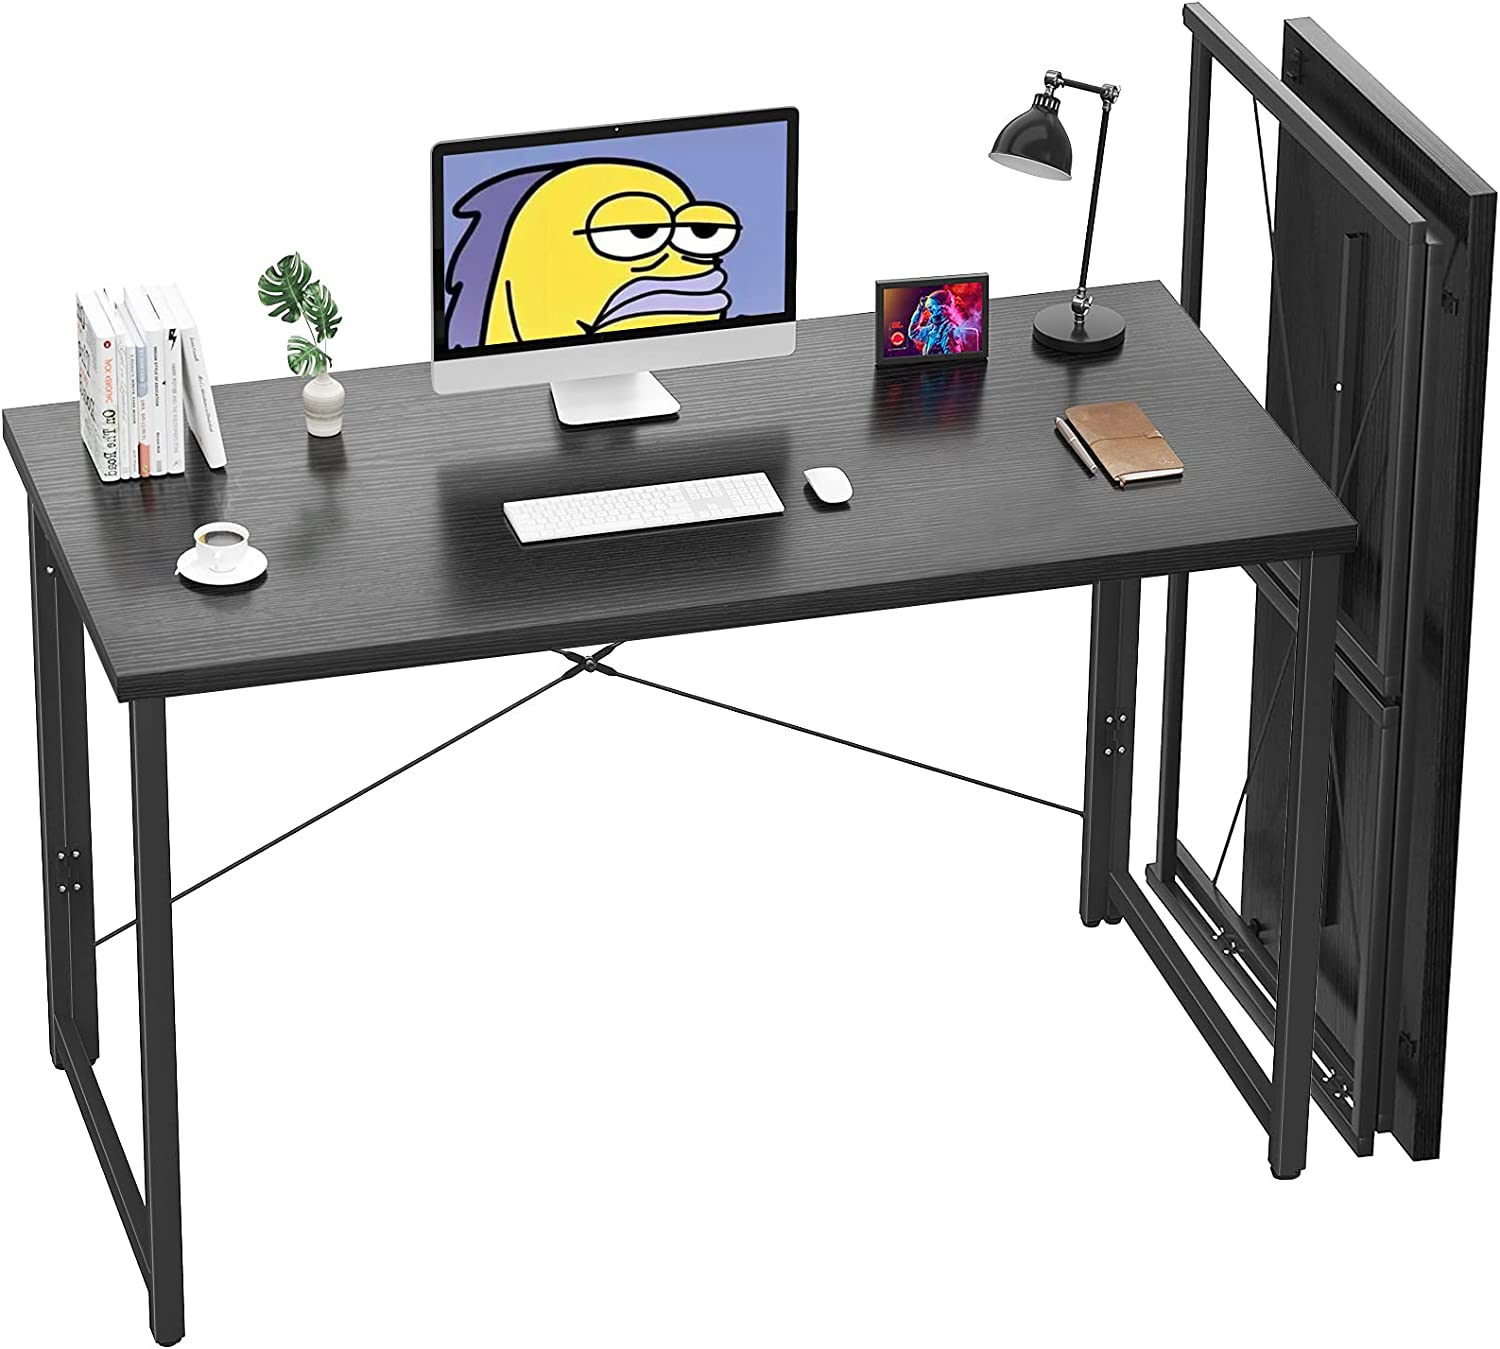 Unikito Folding Computer Desk 41 Inch No Assembly Small Work Desk for Home Office Simple Writing Desk Foldable Desk for Small Spaces, Workstation | Black